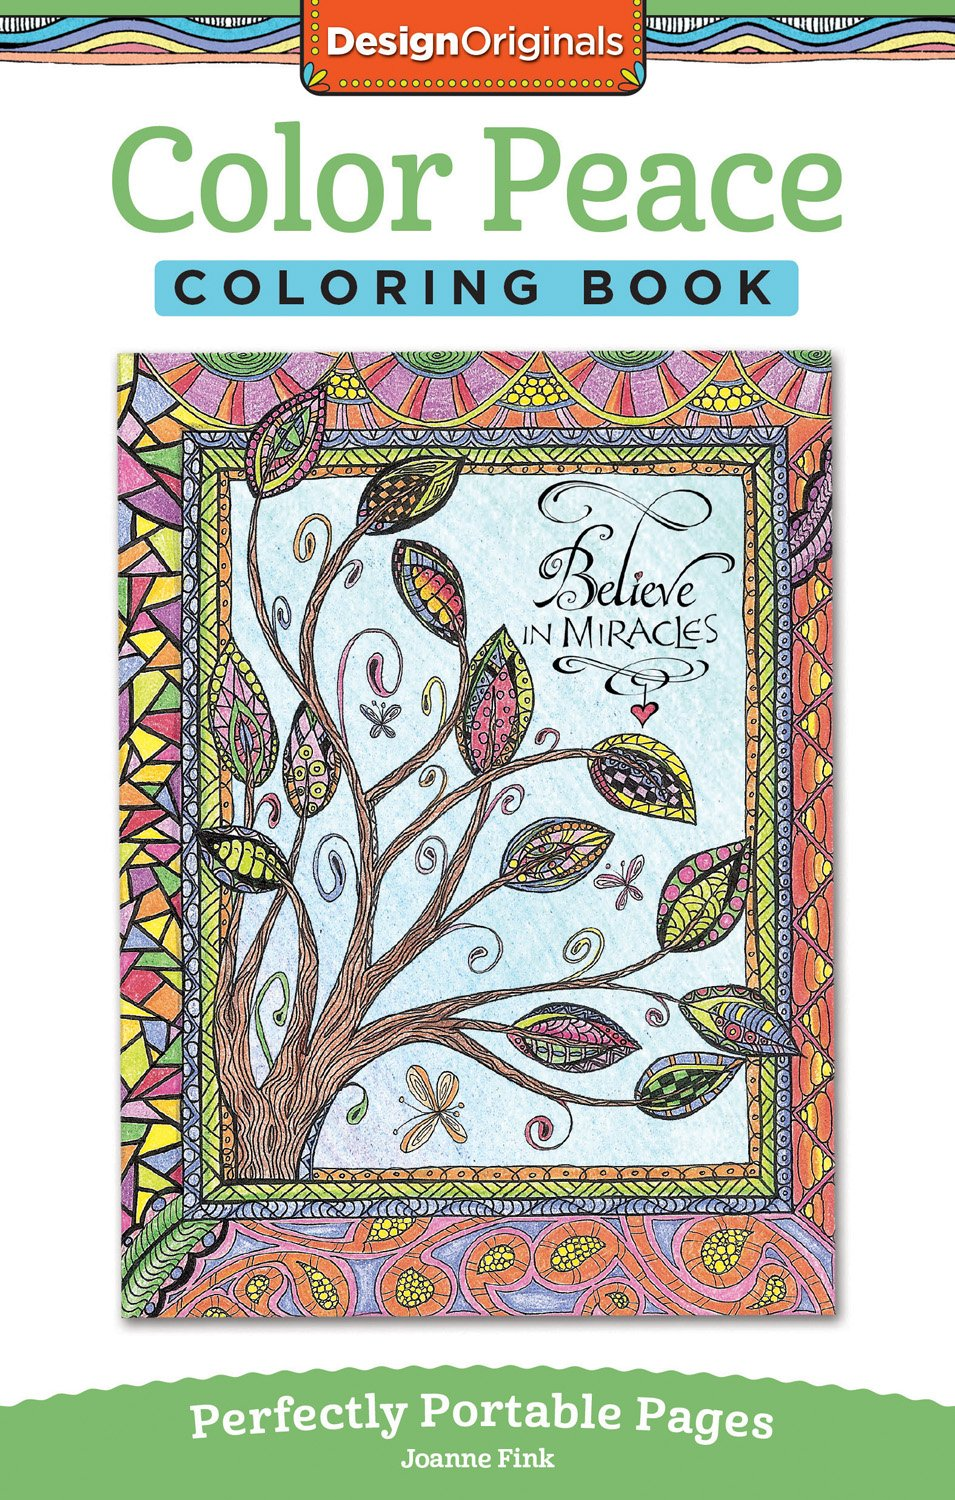 Art color book - Amazon Com Color Peace Coloring Book Perfectly Portable Pages On The Go Coloring Book 9781497200845 Joanne Fink Books